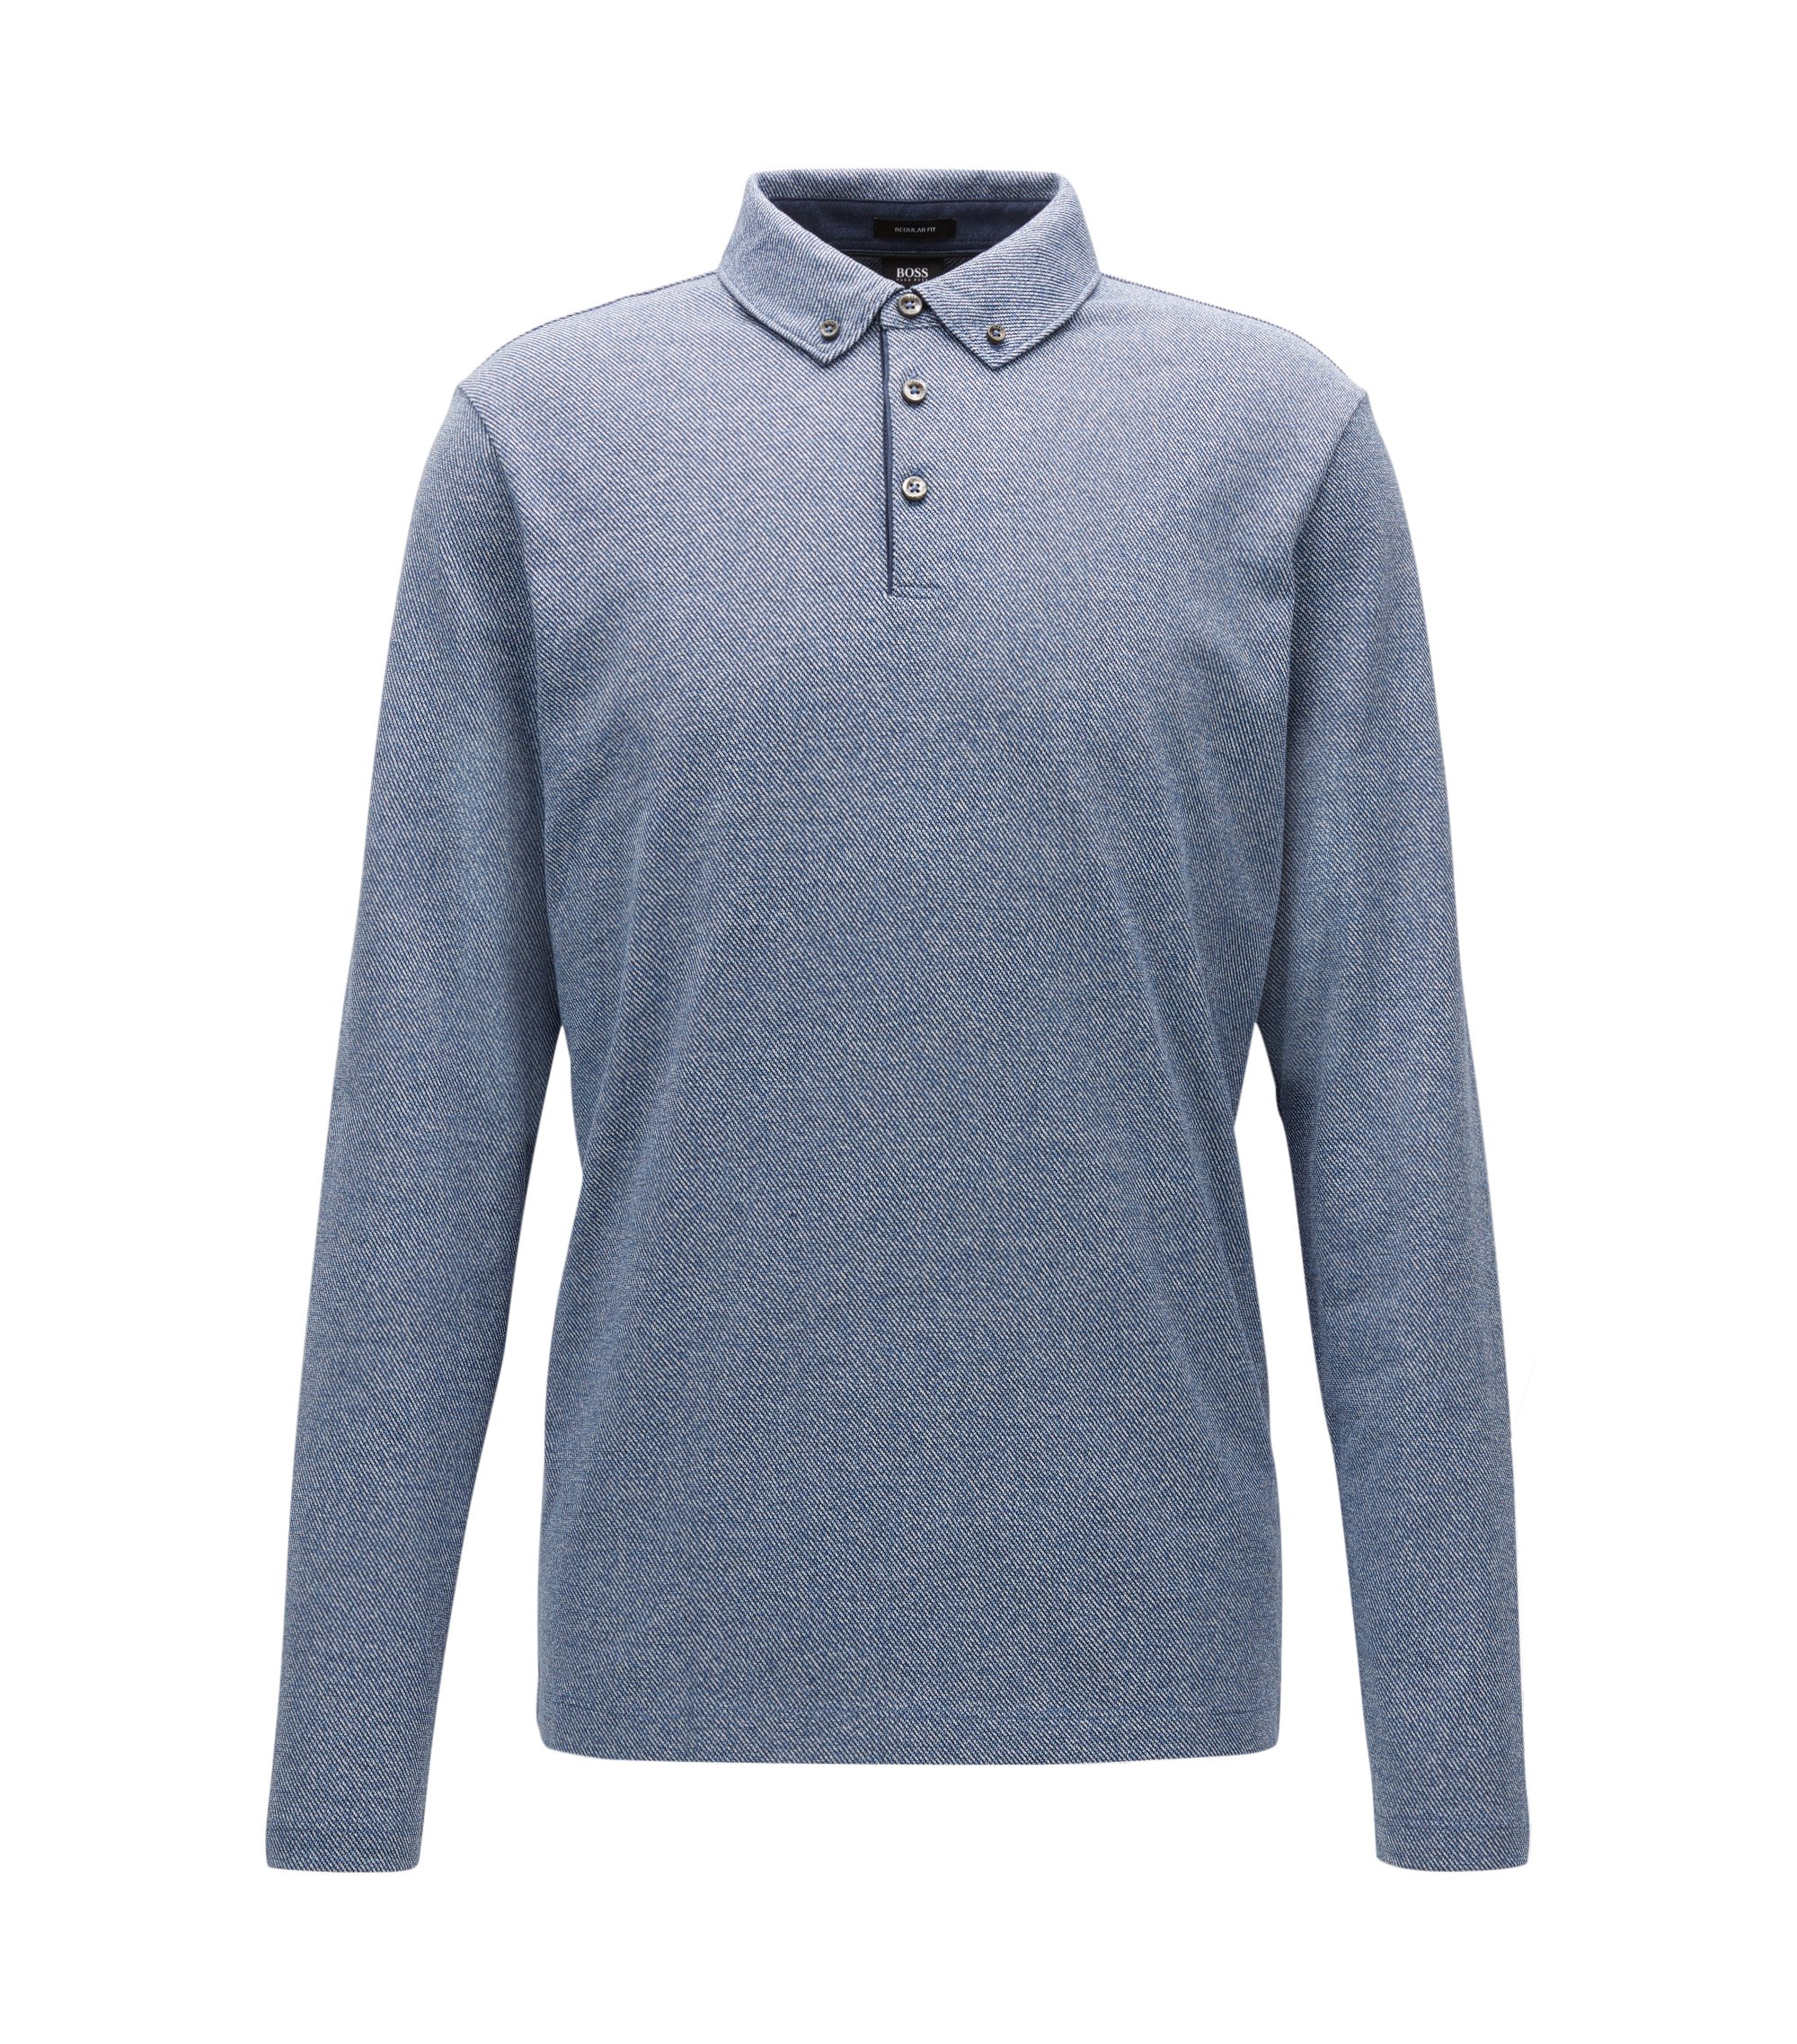 Regular-Fit Longsleeve-Poloshirt aus Baumwolle mit Button-Down-Kragen, Blau